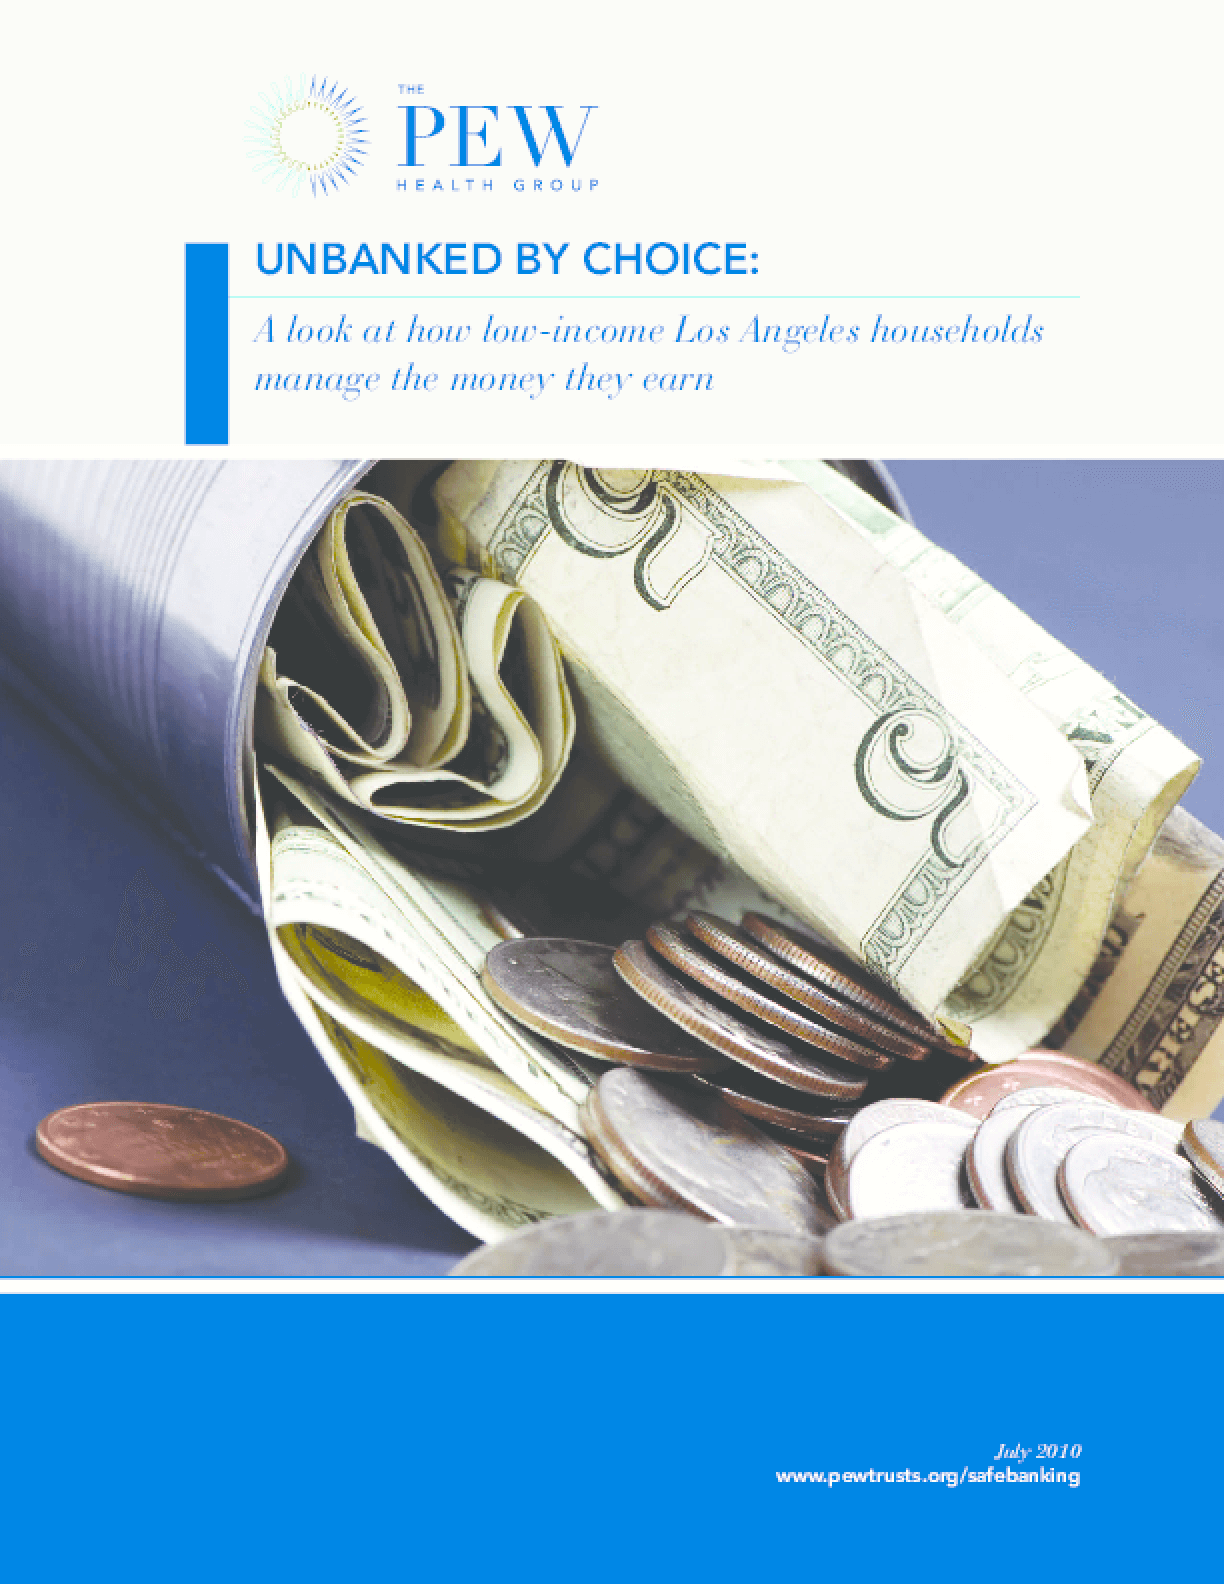 Unbanked by Choice: A Look at How Low-Income Los Angeles Households Manage the Money They Earn